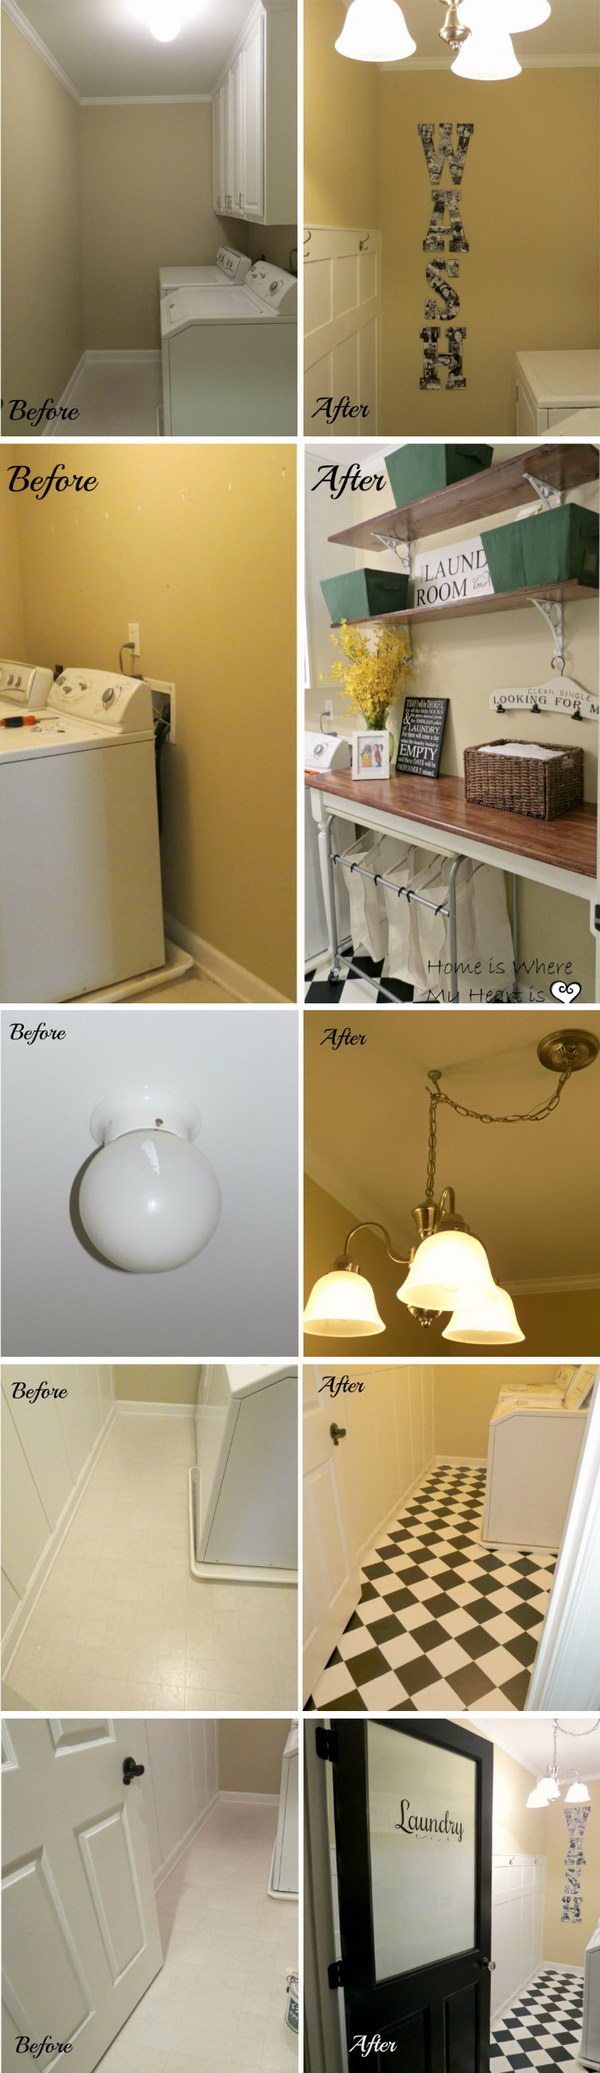 Charming Laundry Room Makeover.